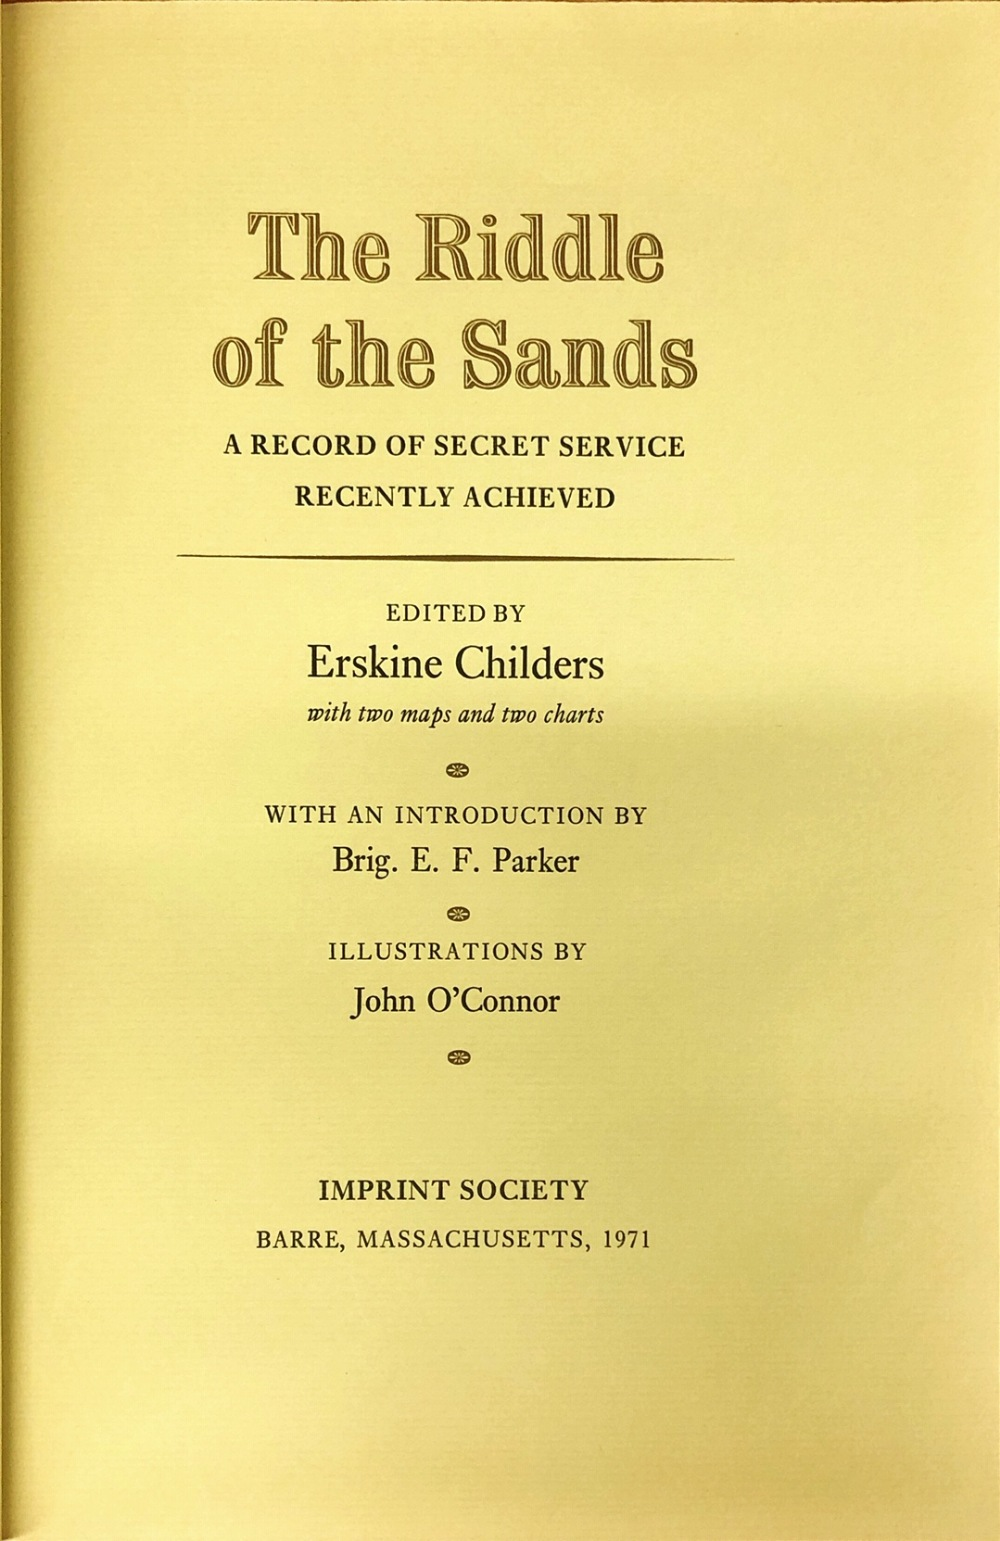 Lot 55 - Illustrated Limited Editions Childers (Erskine) The Riddle of the Sands,